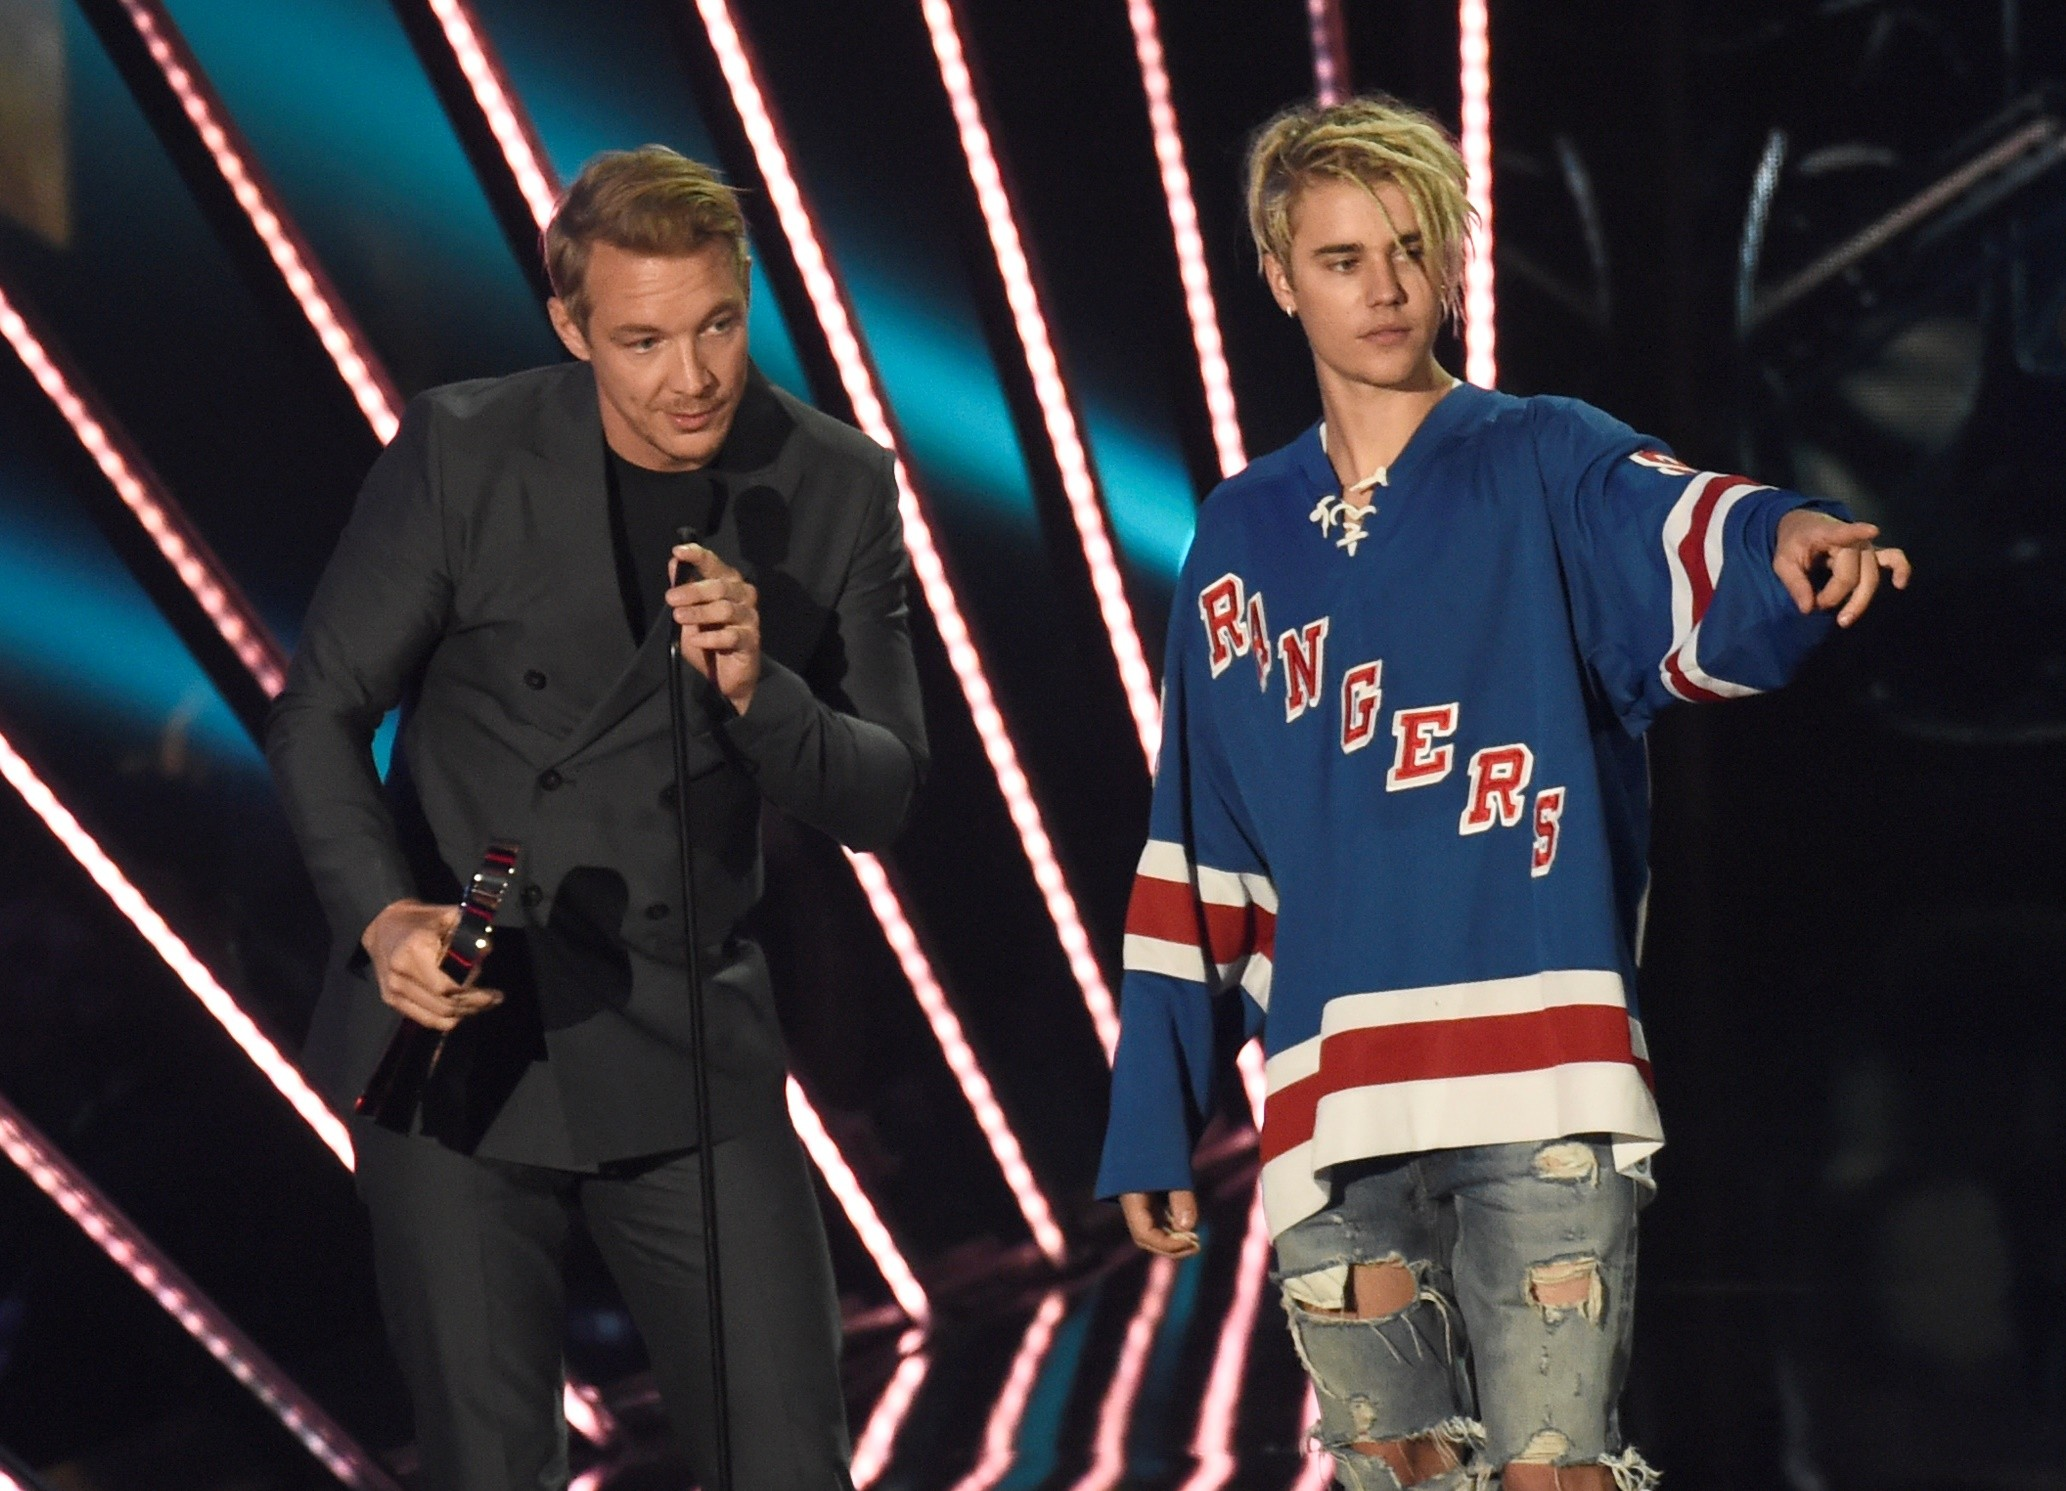 Diplo e Justin Bieber j ganharam um Grammy juntos, com 'Where Are U Now', parceria do cantor com o projeto Jack  (Foto: Chris Pizzello/Invision/AP)